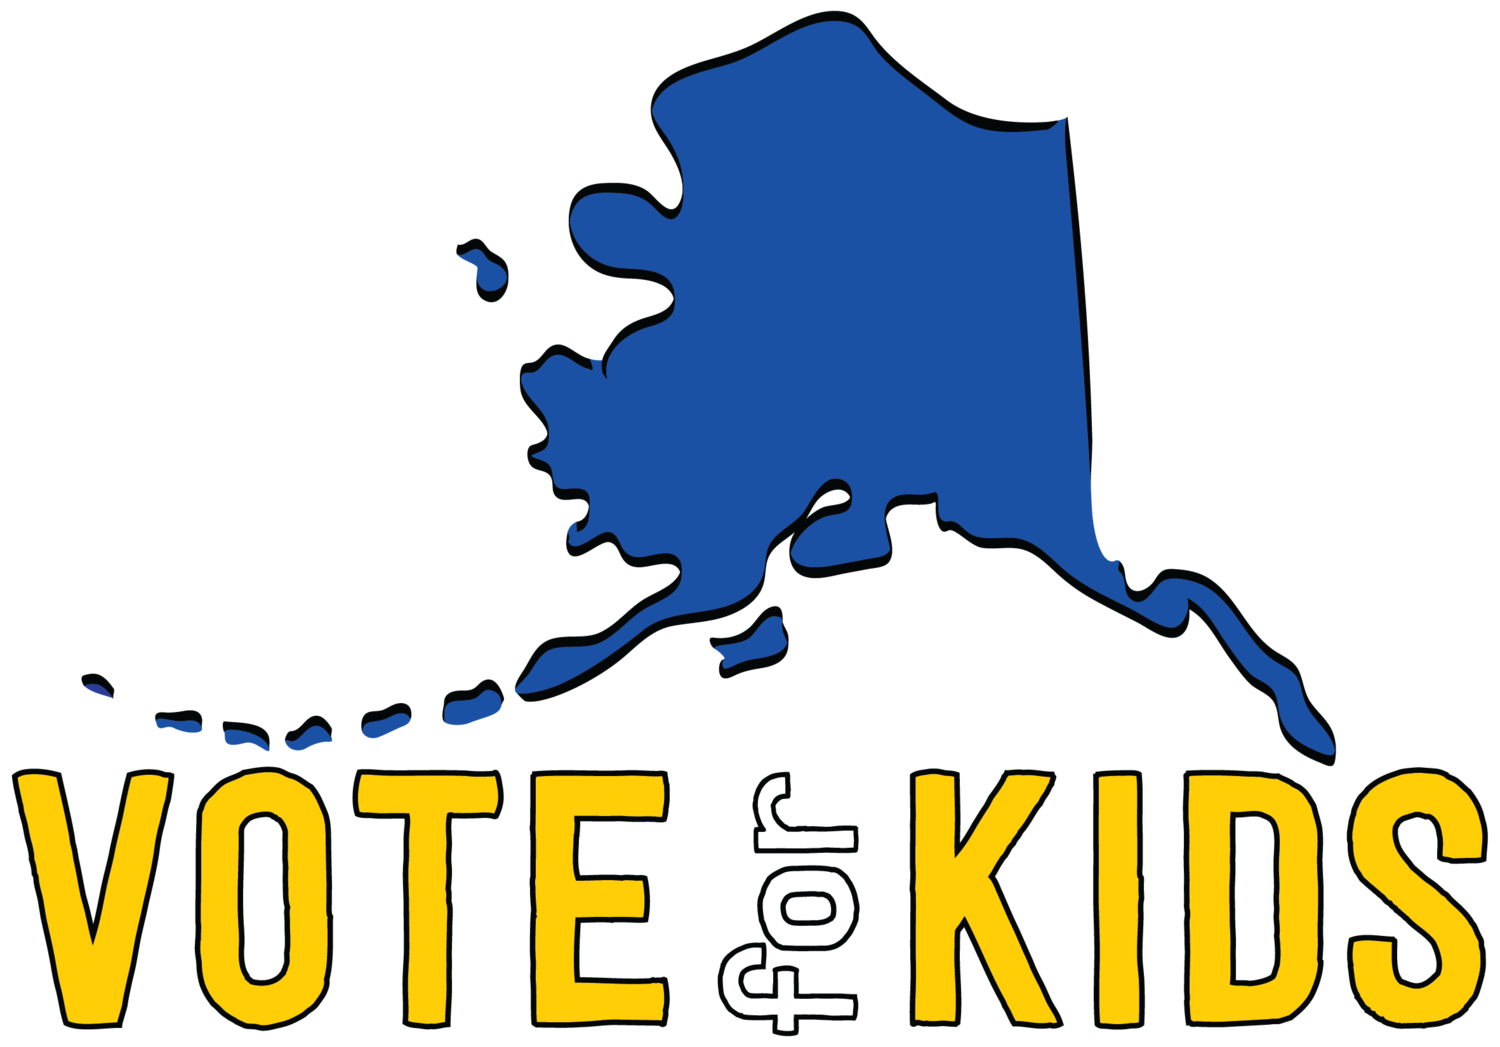 Voting drawing poster. Vote for kids ak